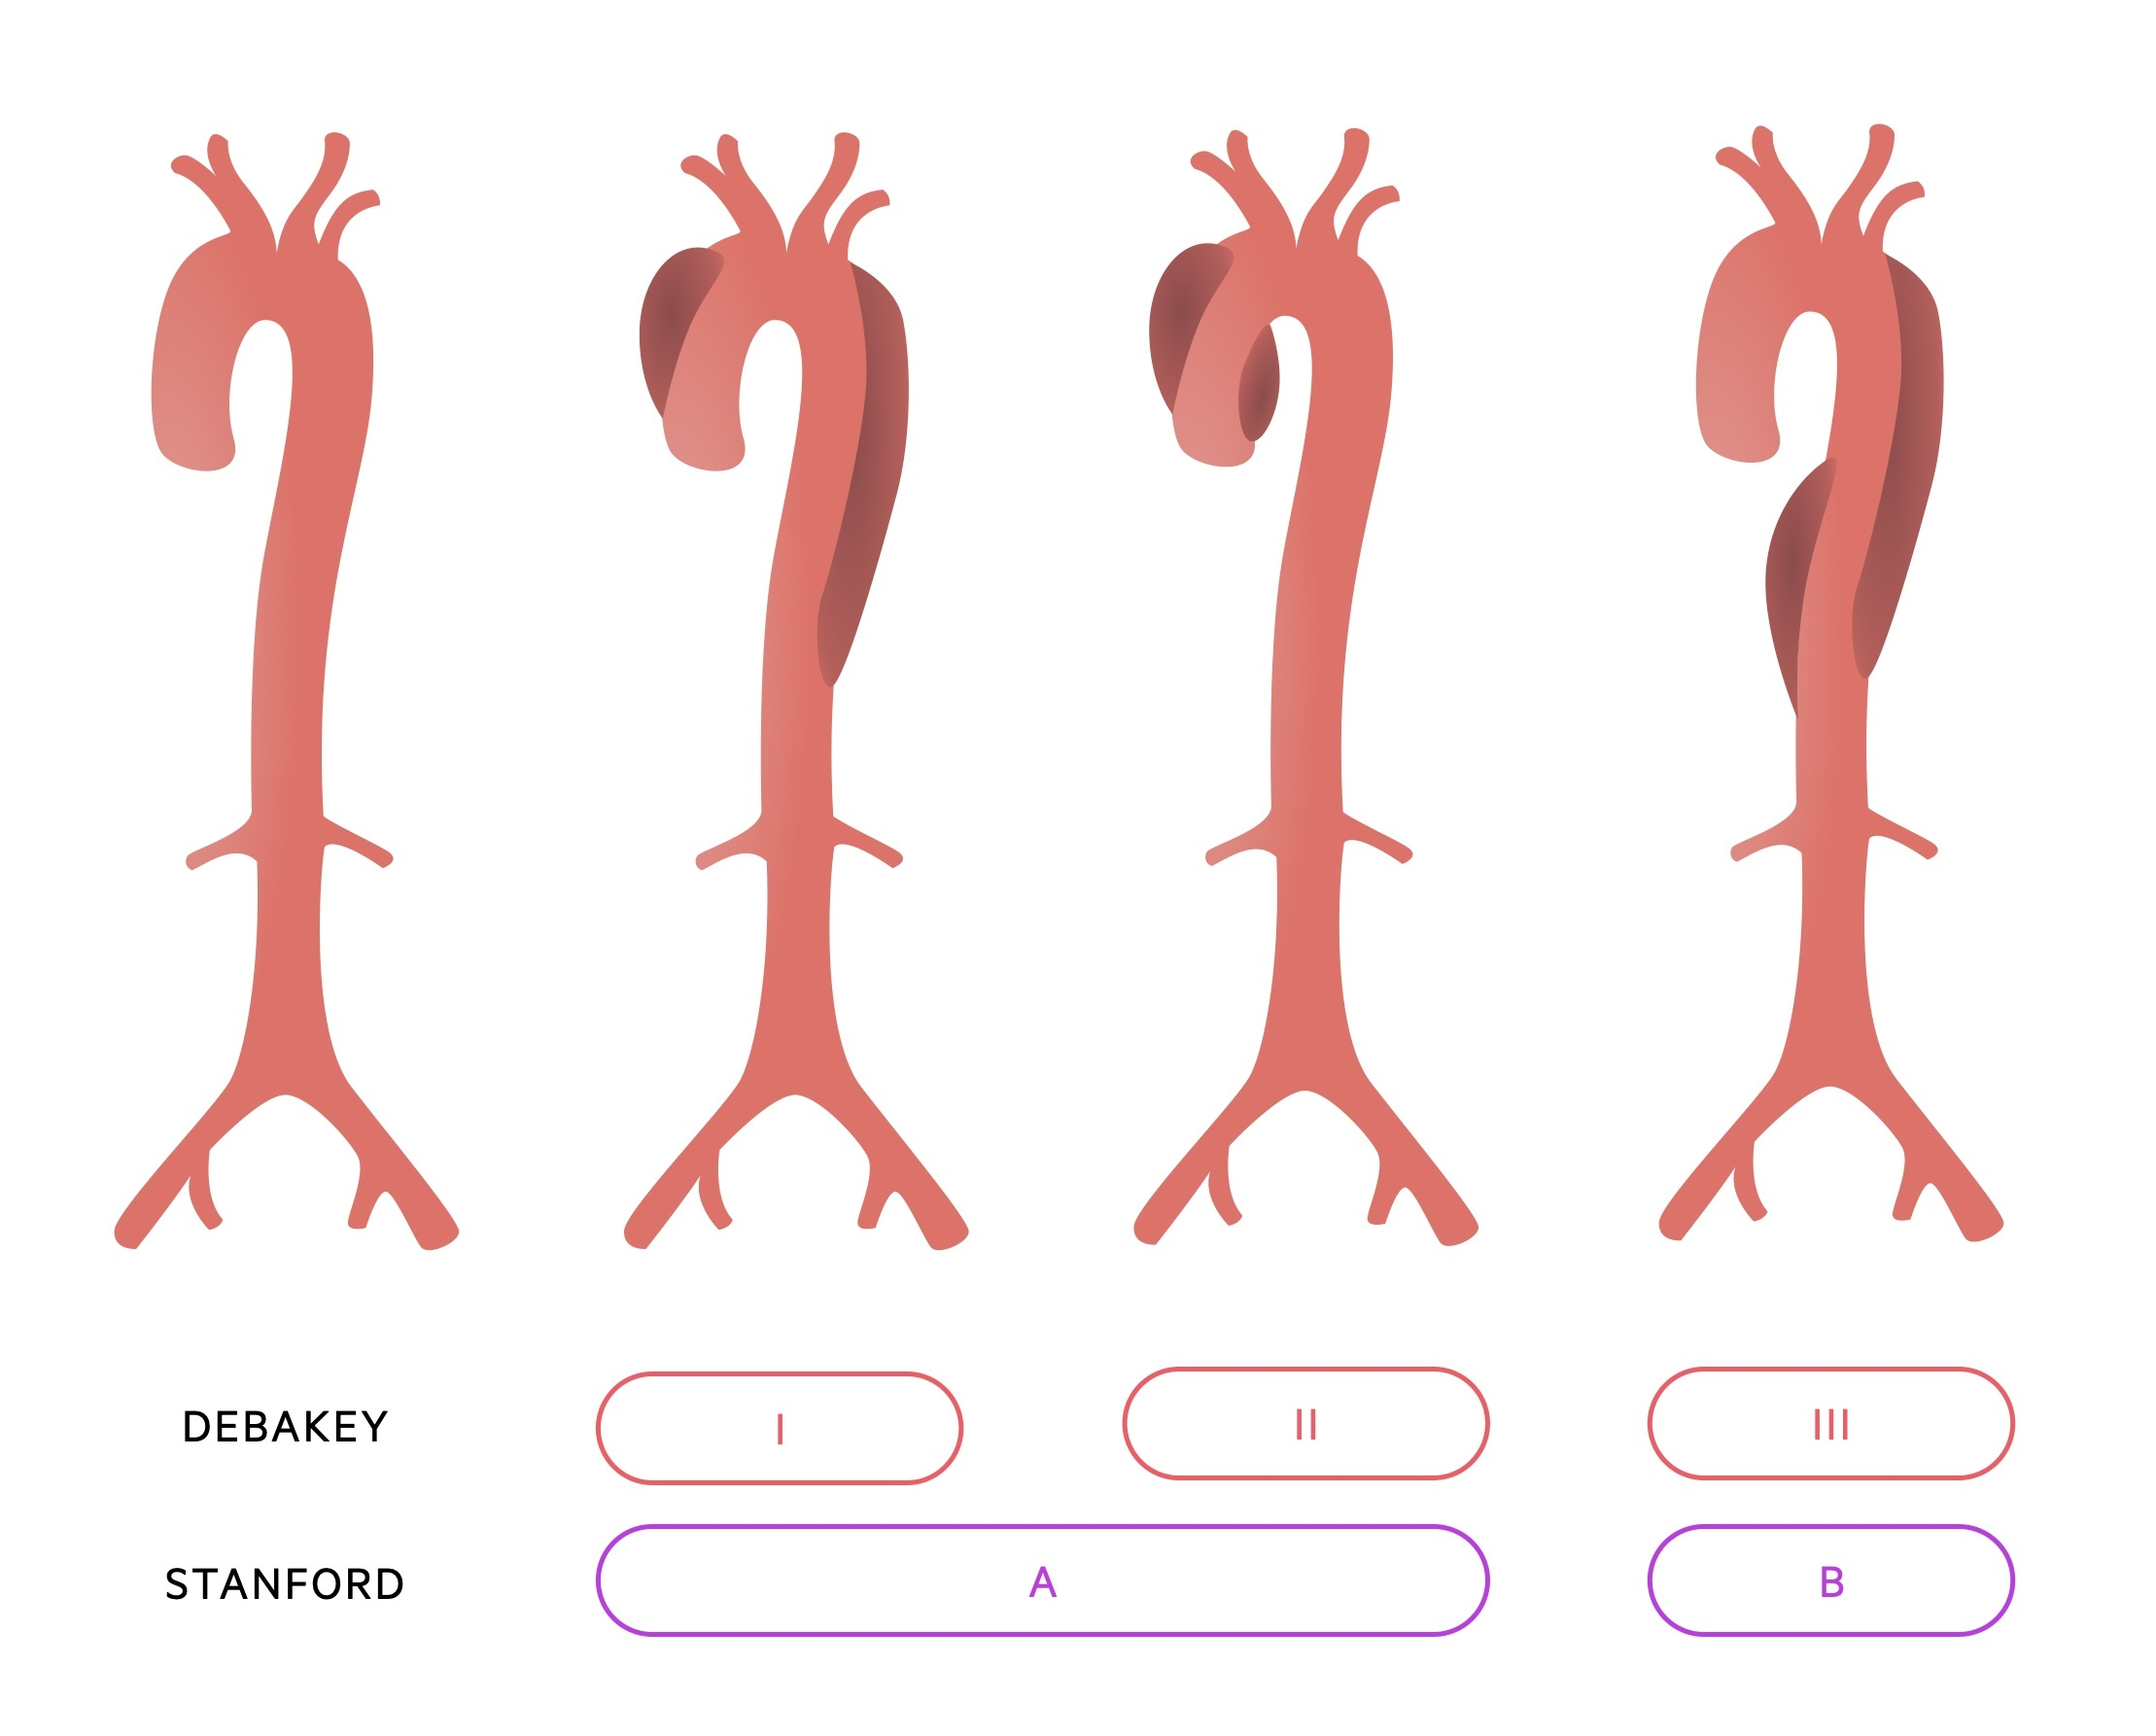 Classification of aortic dissection (Debakey and Stanford)